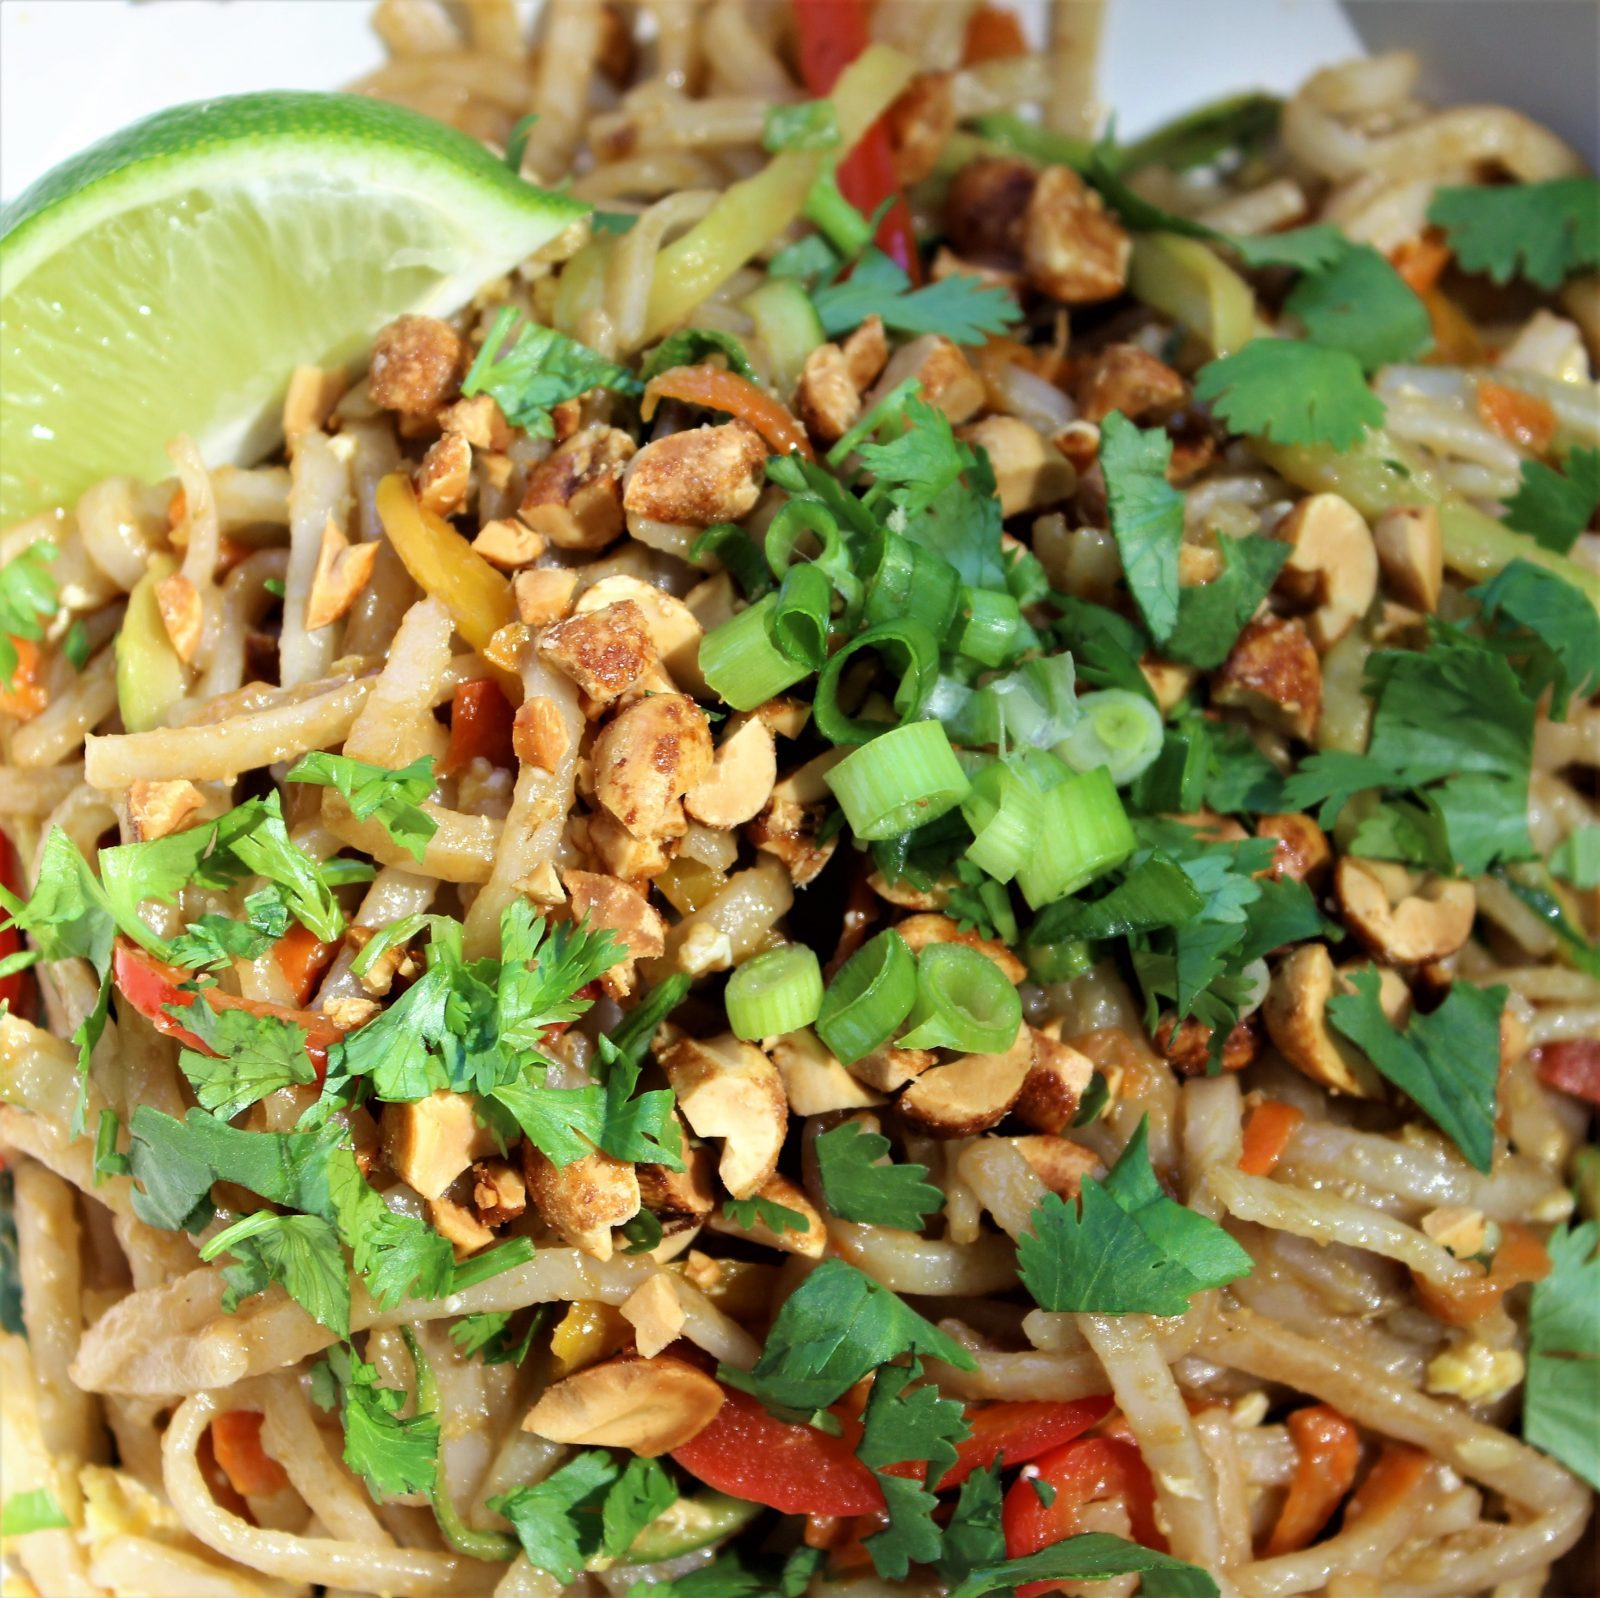 Asian Noodles with Peanut Sauce and Veggies